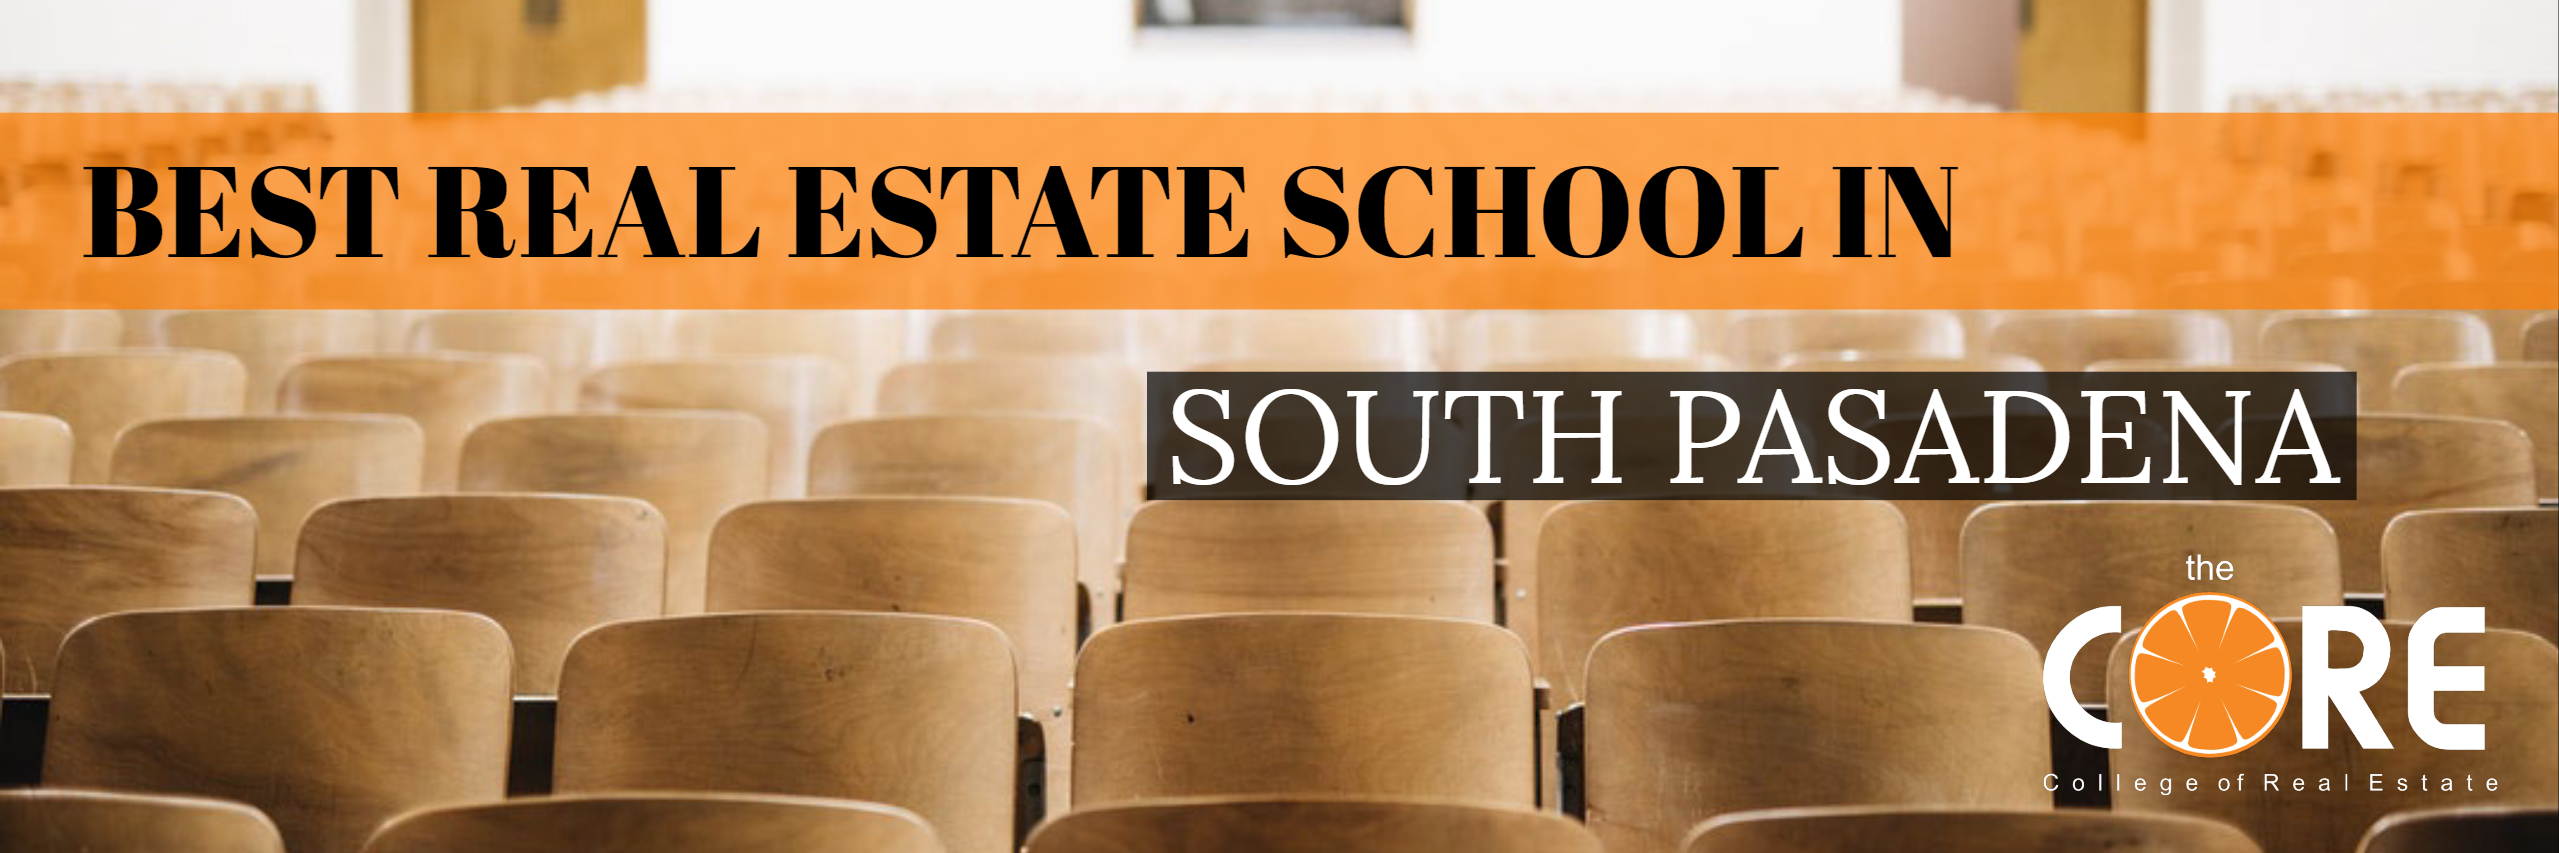 Best Real Estate School In South Pasadena